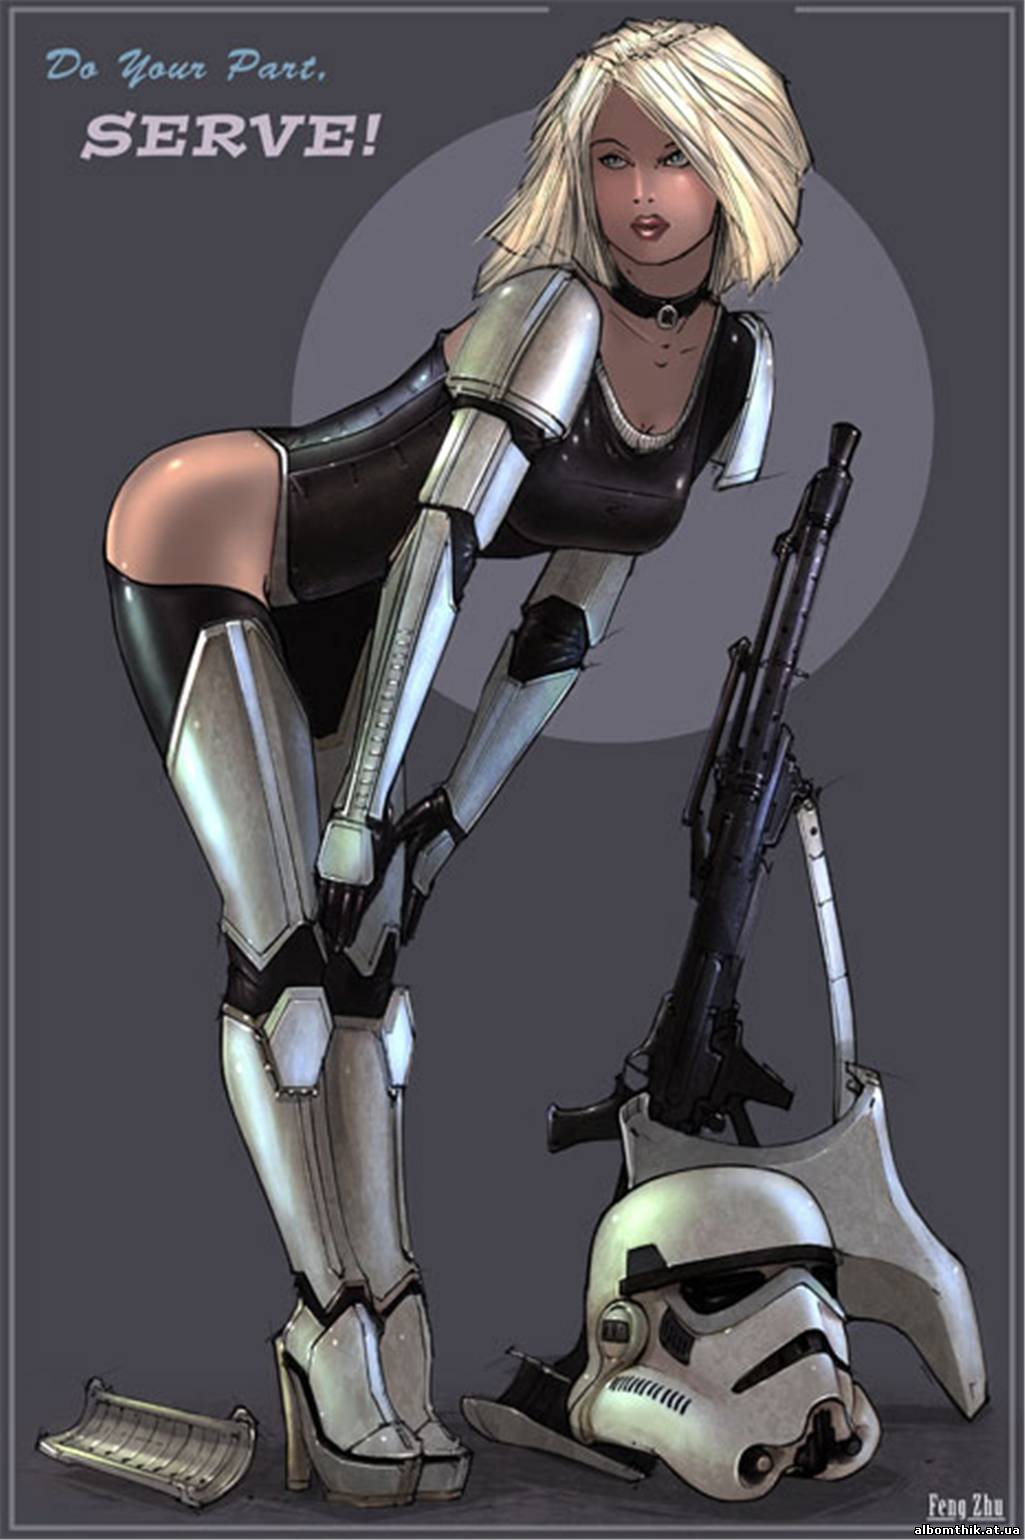 Hot female star wars cartoon images erotic galleries